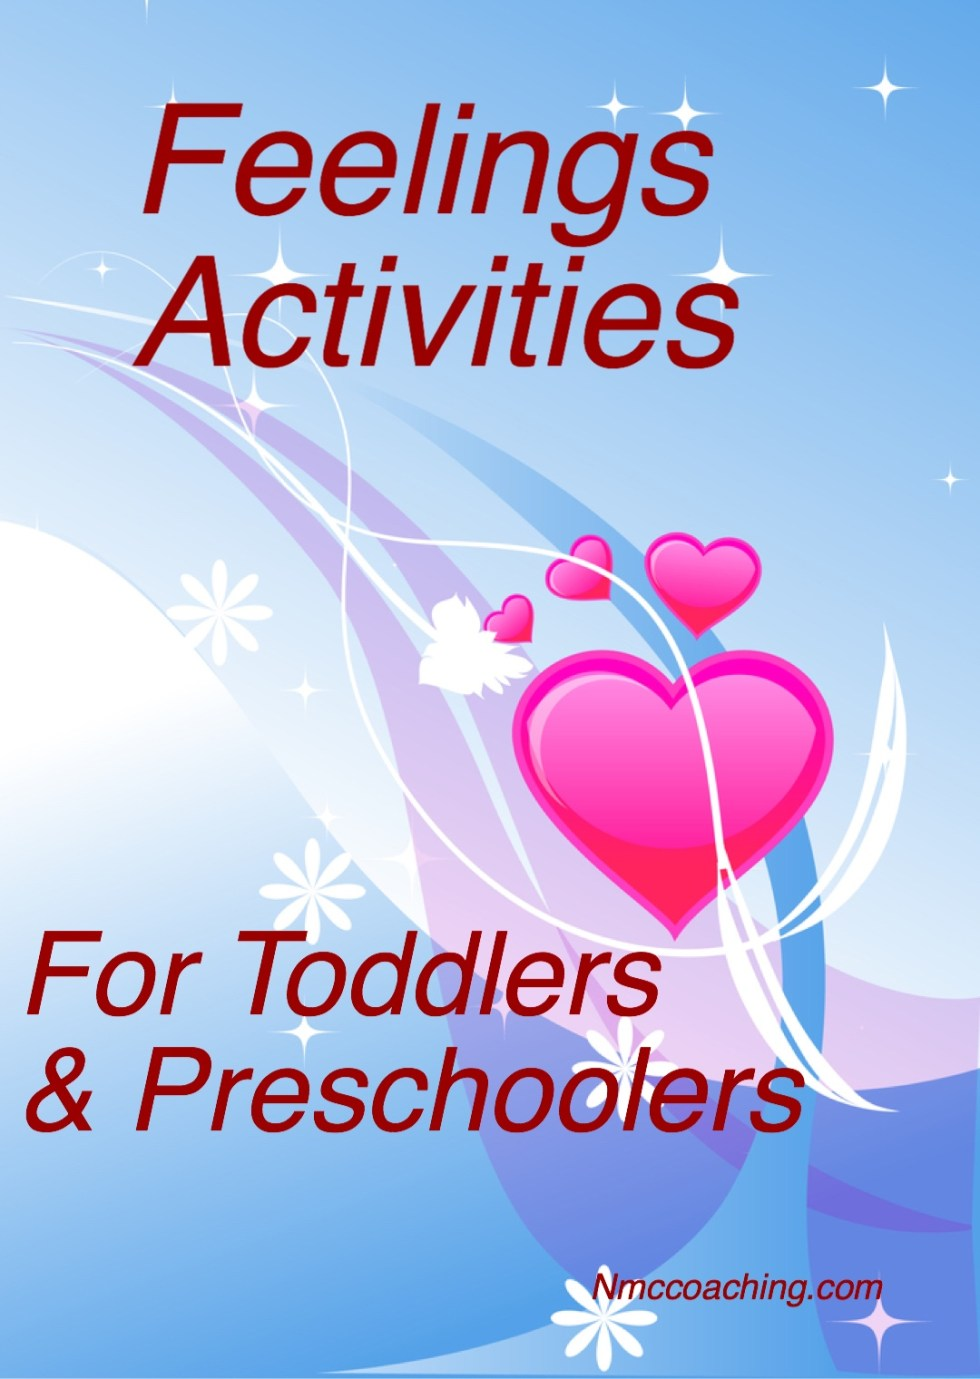 Feelings activities for toddlers and preschoolers